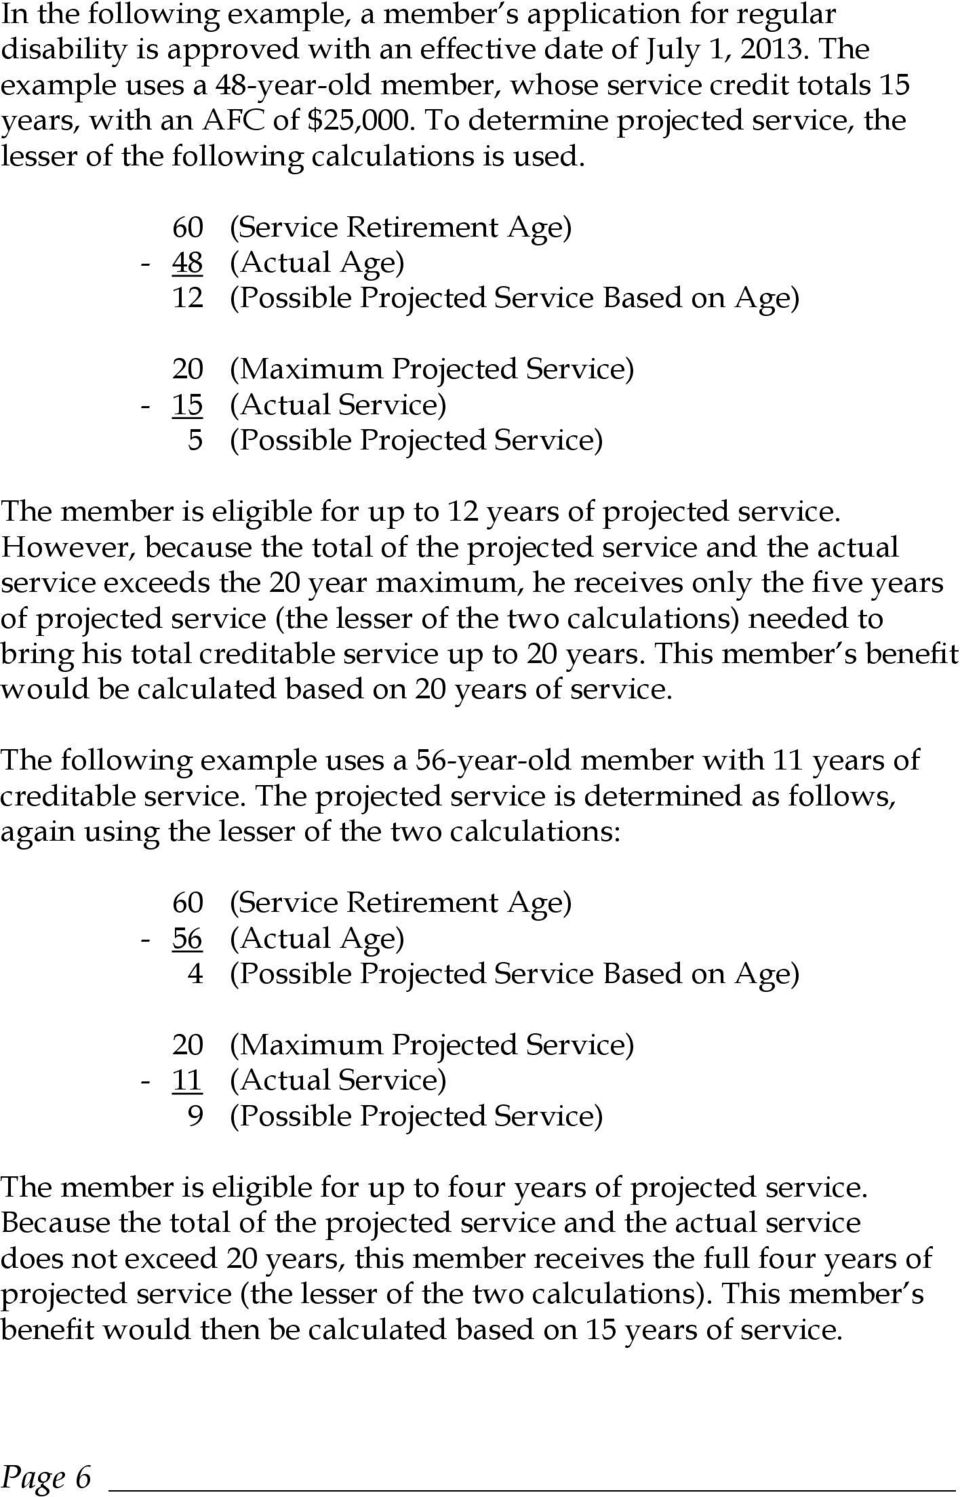 60 (Service Retirement Age) - 48 (Actual Age) 12 (Possible Projected Service Based on Age) 20 (Maximum Projected Service) - 15 (Actual Service) 5 (Possible Projected Service) The member is eligible